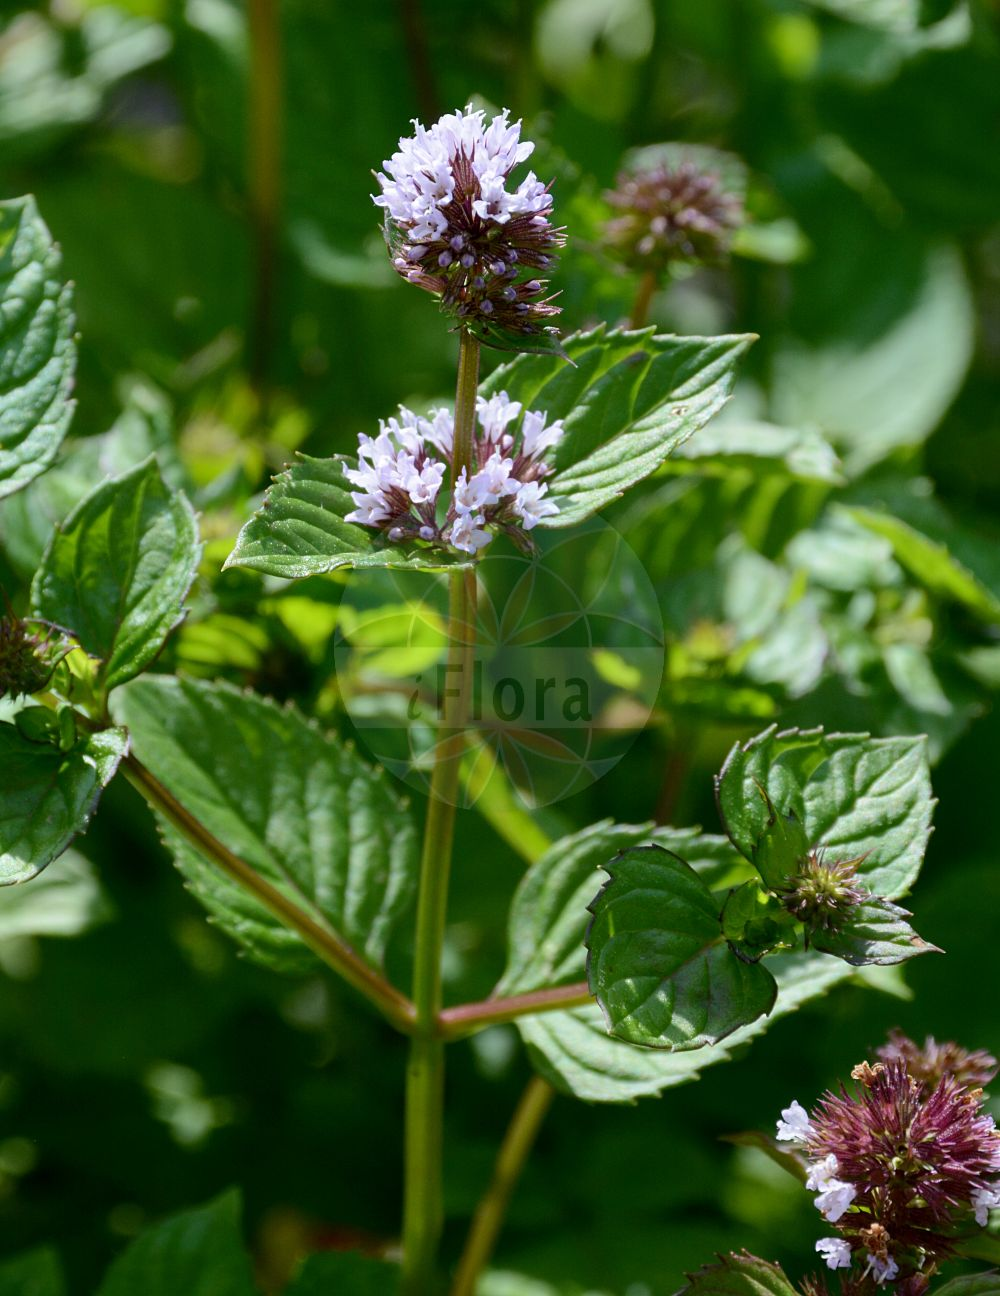 Foto von Mentha piperita (Pfeffer-Minze - Chocolate Mint). Das Foto wurde in Wuerzburg, Bayern, Deutschland aufgenommen. ---- Photo of Mentha piperita (Pfeffer-Minze - Chocolate Mint).The picture was taken in Wuerzburg, Bayern, Germany.(Mentha piperita,Pfeffer-Minze,Chocolate Mint,Mentha,Minze,Mint,Lamiaceae,Lippenbluetengewaechse;Lippenbluetler,Nettle family)